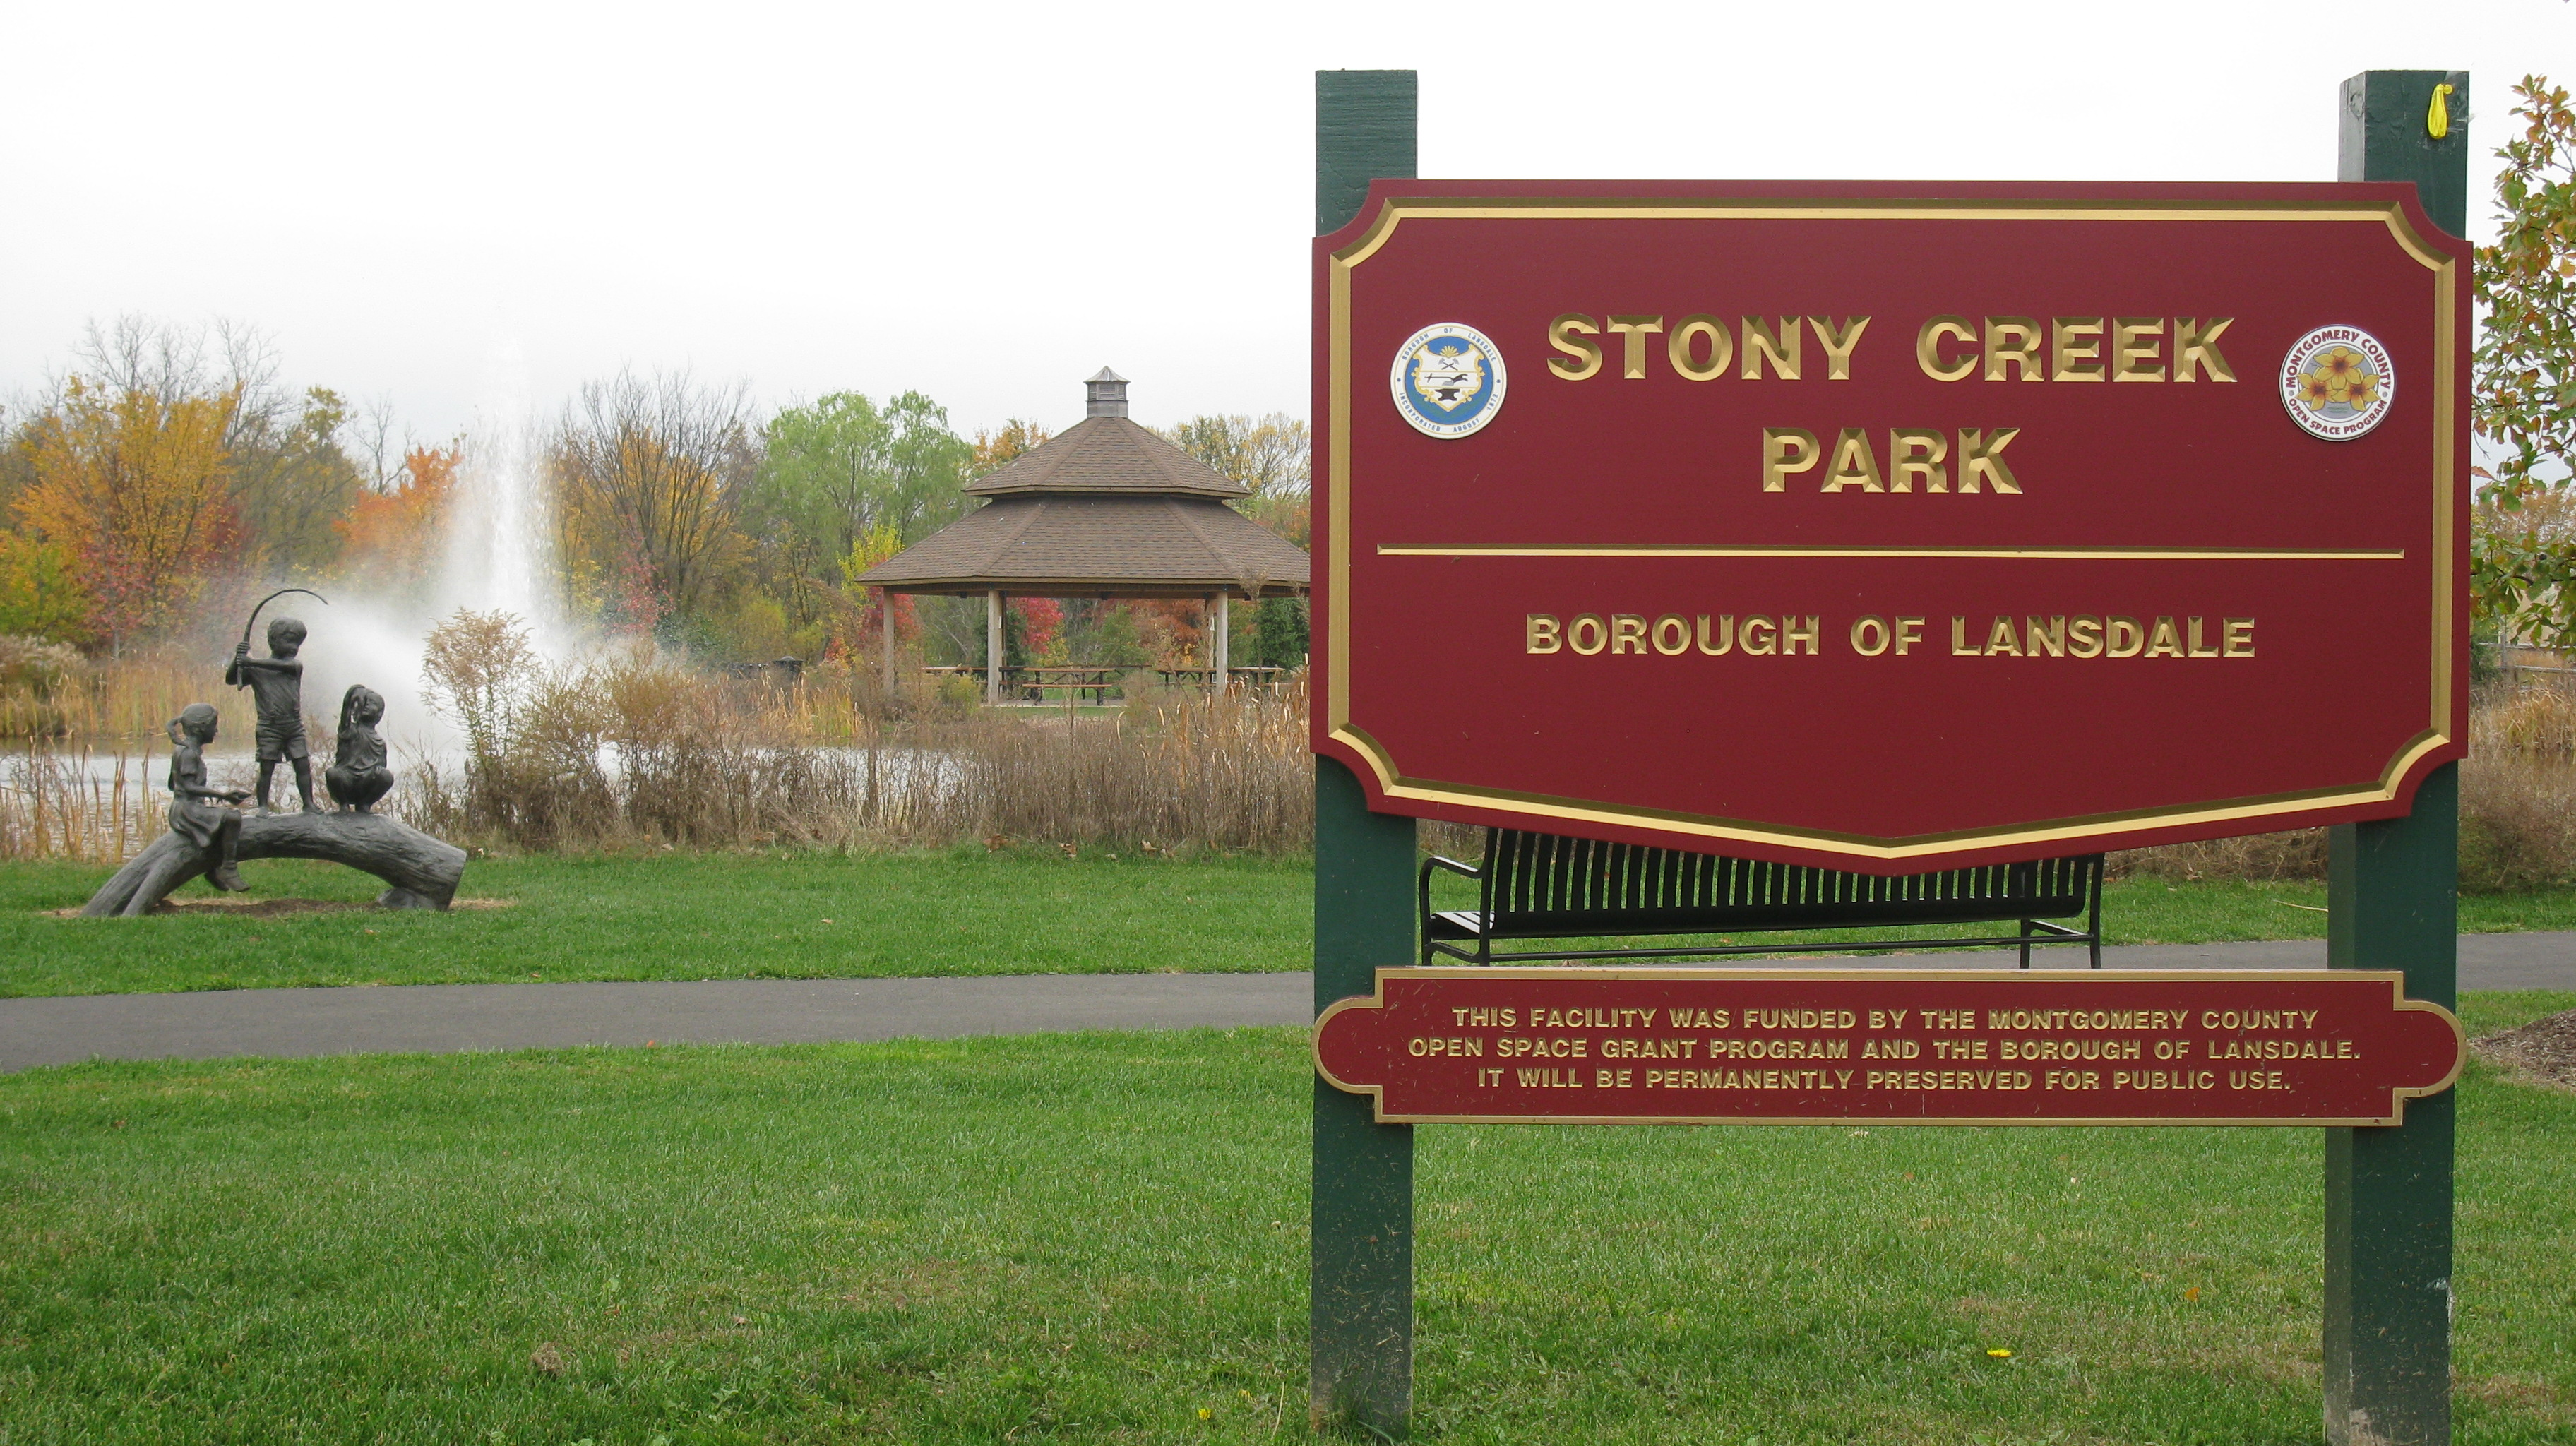 Stony Creek Park (3)